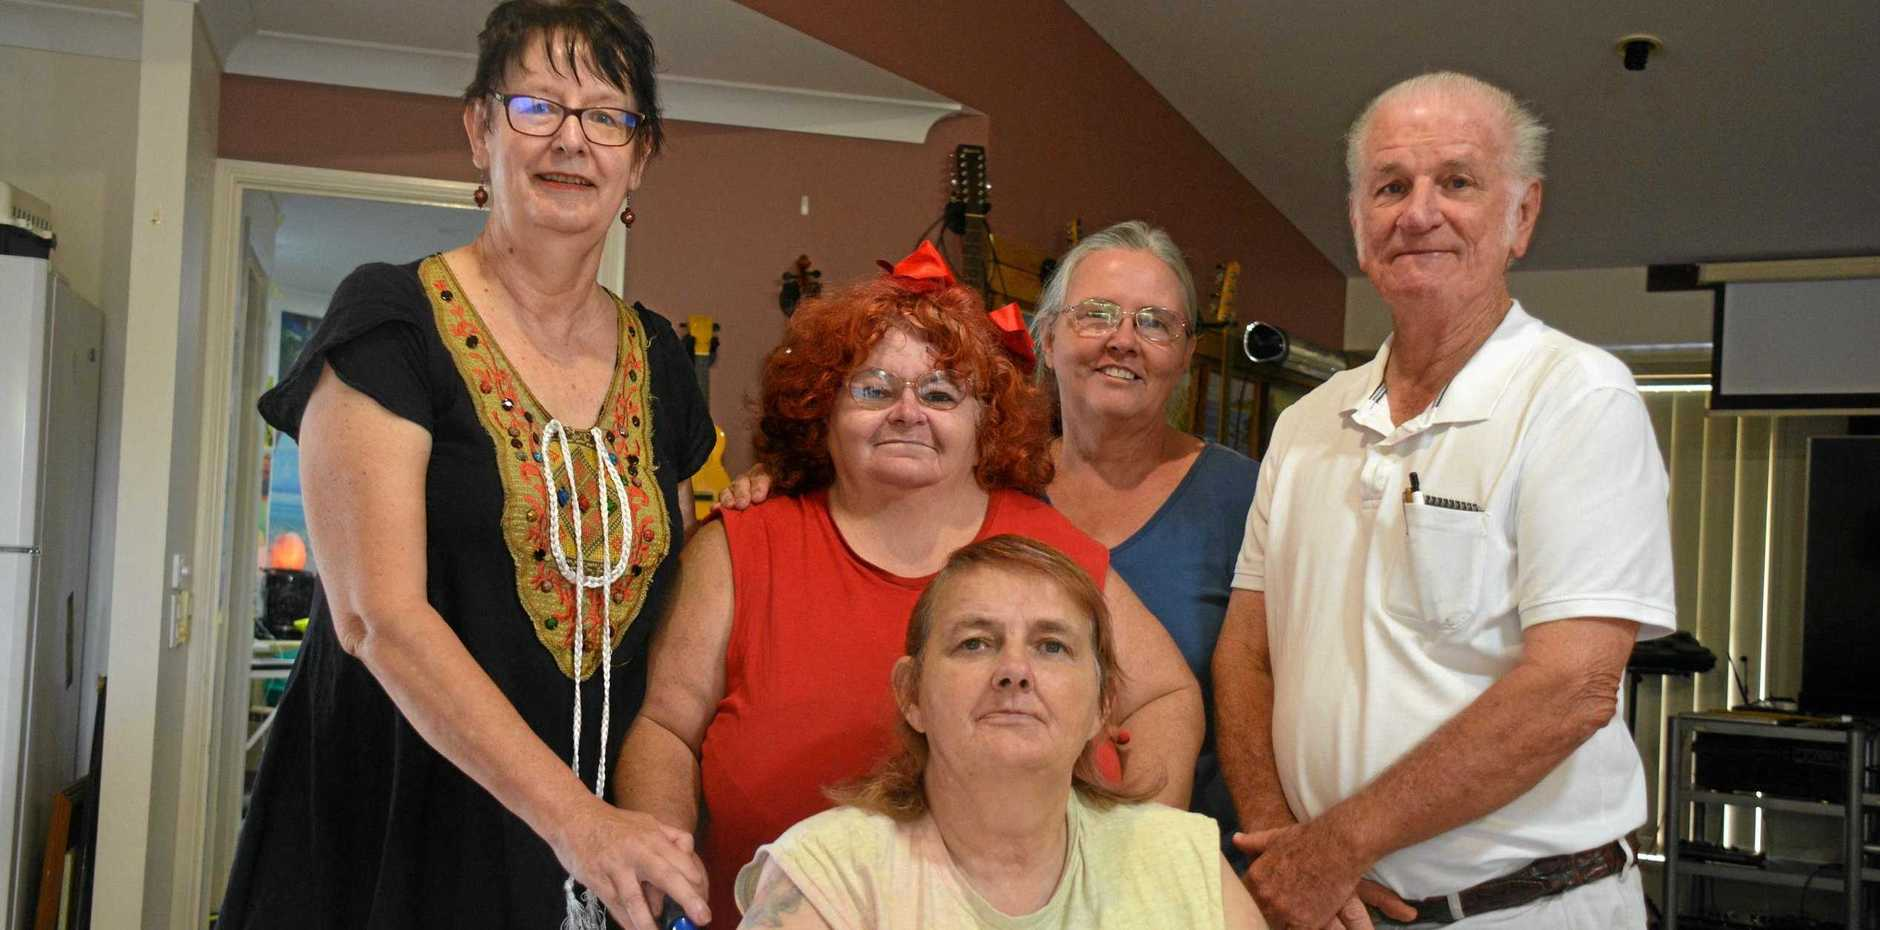 BIG LOSS: Former committee members Mandy James, Sue Miller, Rhonda Trivett, Jenny Larkin and Ron Hartley made the decision to dissolve the South Burnett Peace of Mind organisation earlier this year. Founder Rhonda Trivett has now decided to start up a business of the same name to continue its work.